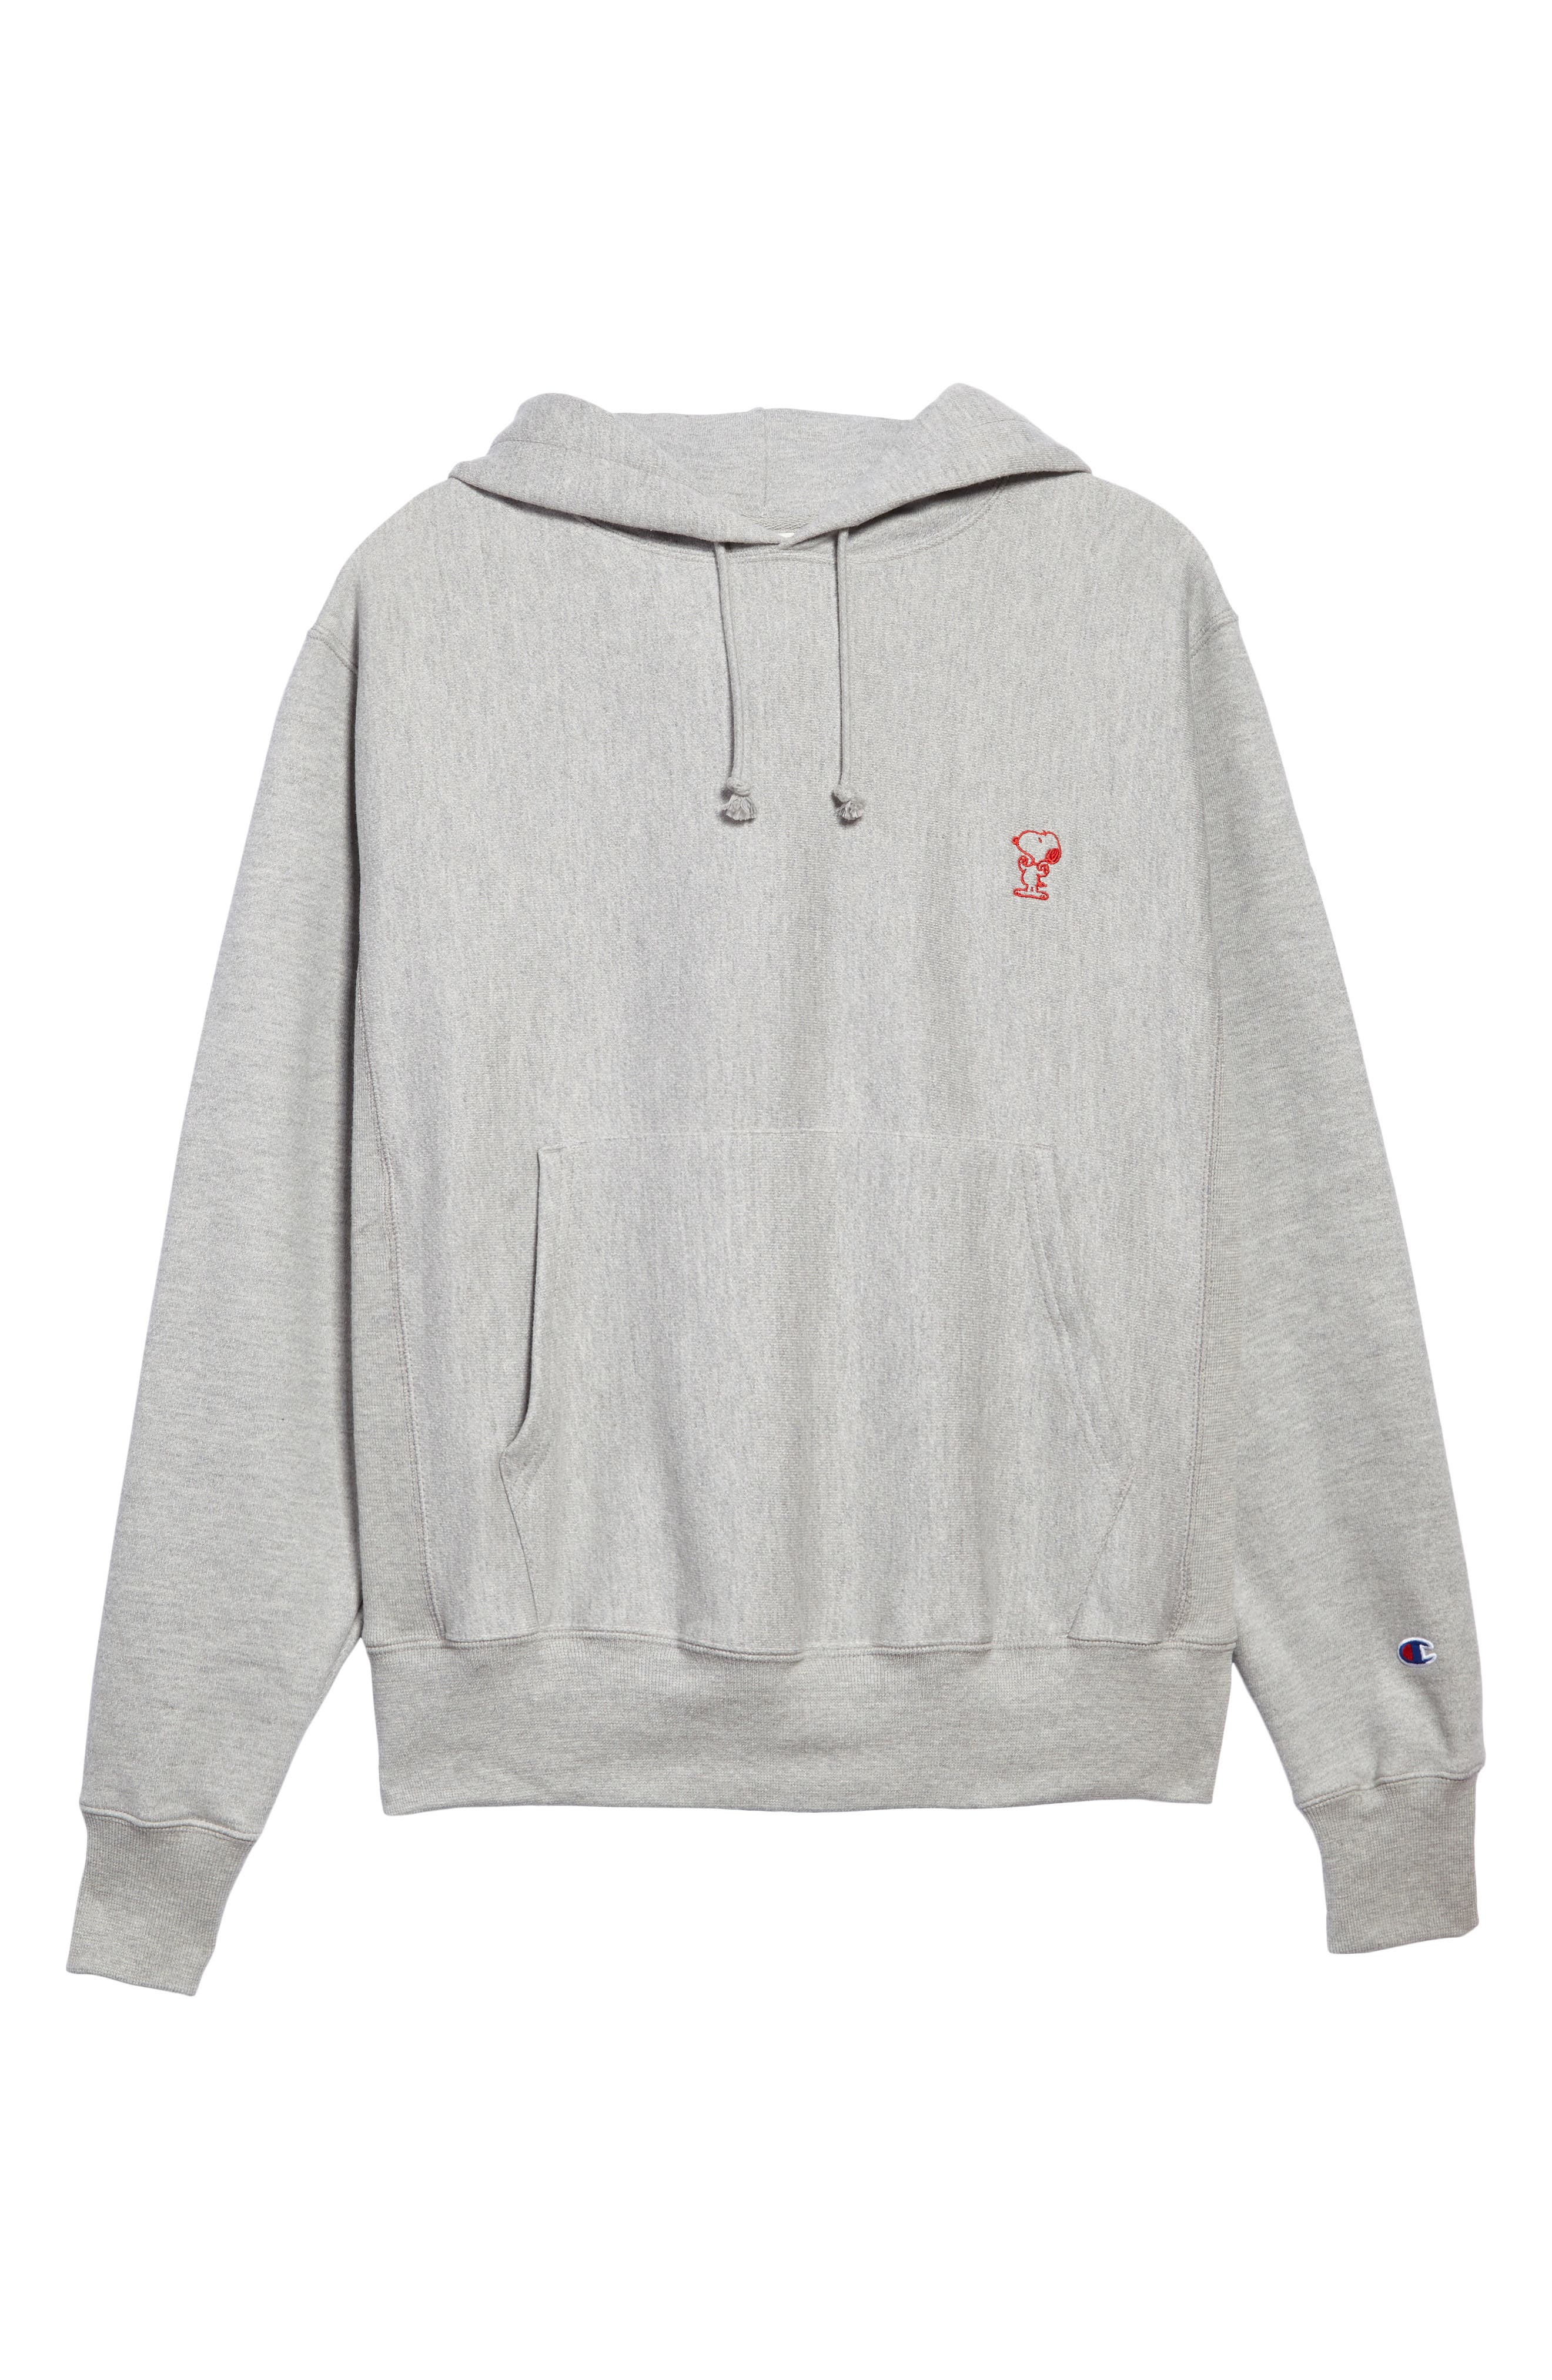 Main Image - Champion Snoopy Unisex Pullover Hoodie (Limited Edition) (Nordstrom Exclusive)